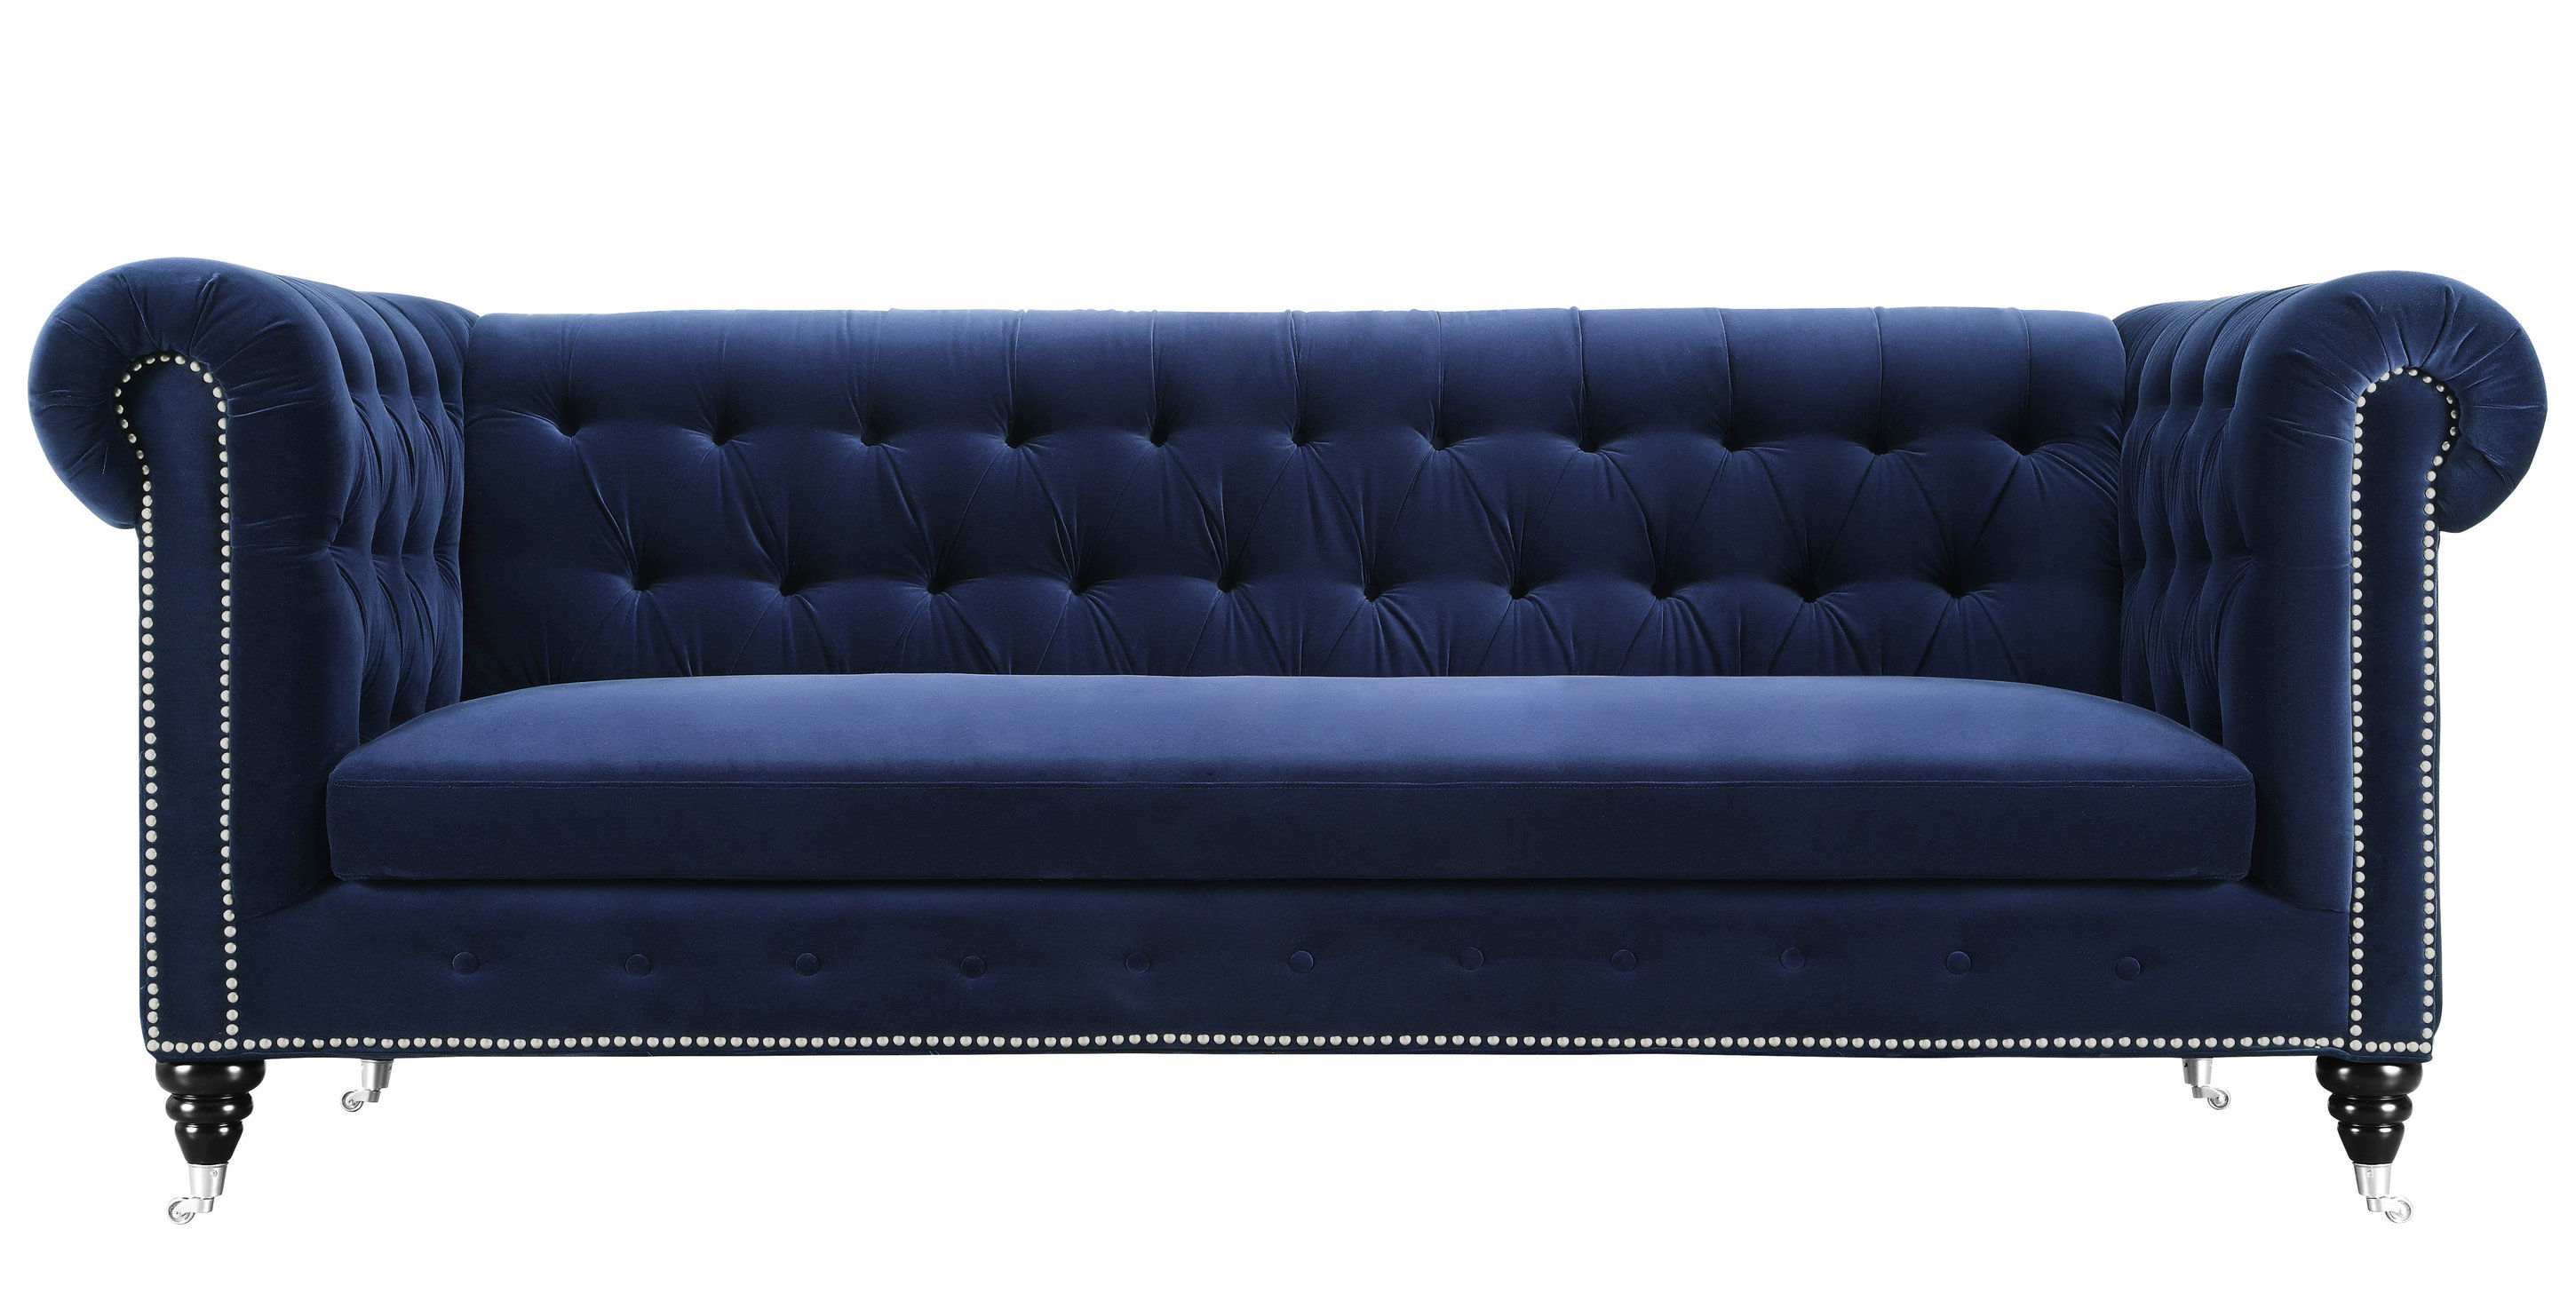 Outstanding Tov Furniture Hanny Navy Blue Velvet Sofa Onthecornerstone Fun Painted Chair Ideas Images Onthecornerstoneorg